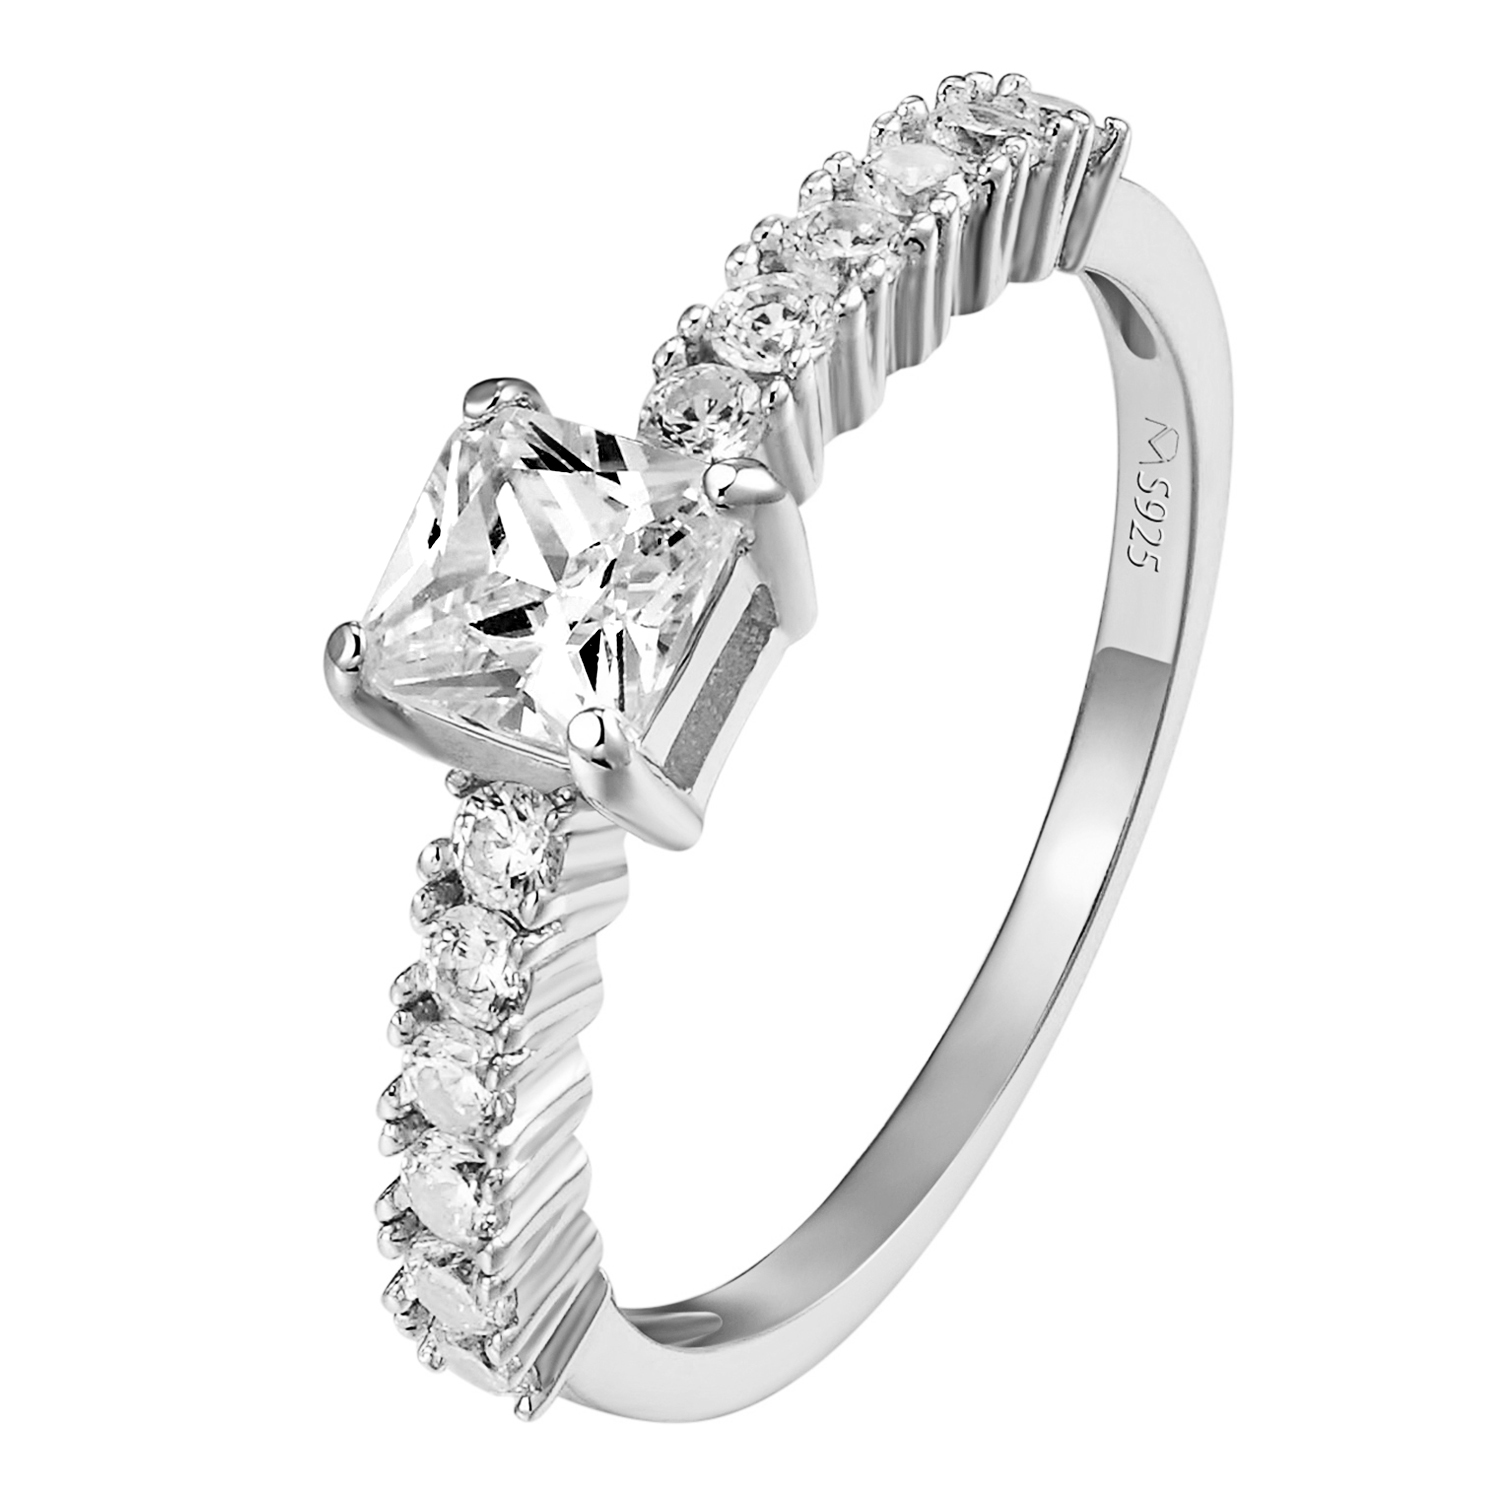 Solitaire Womens Engagement Ring Princess Cut Wedding Prong Set Sterling Silver